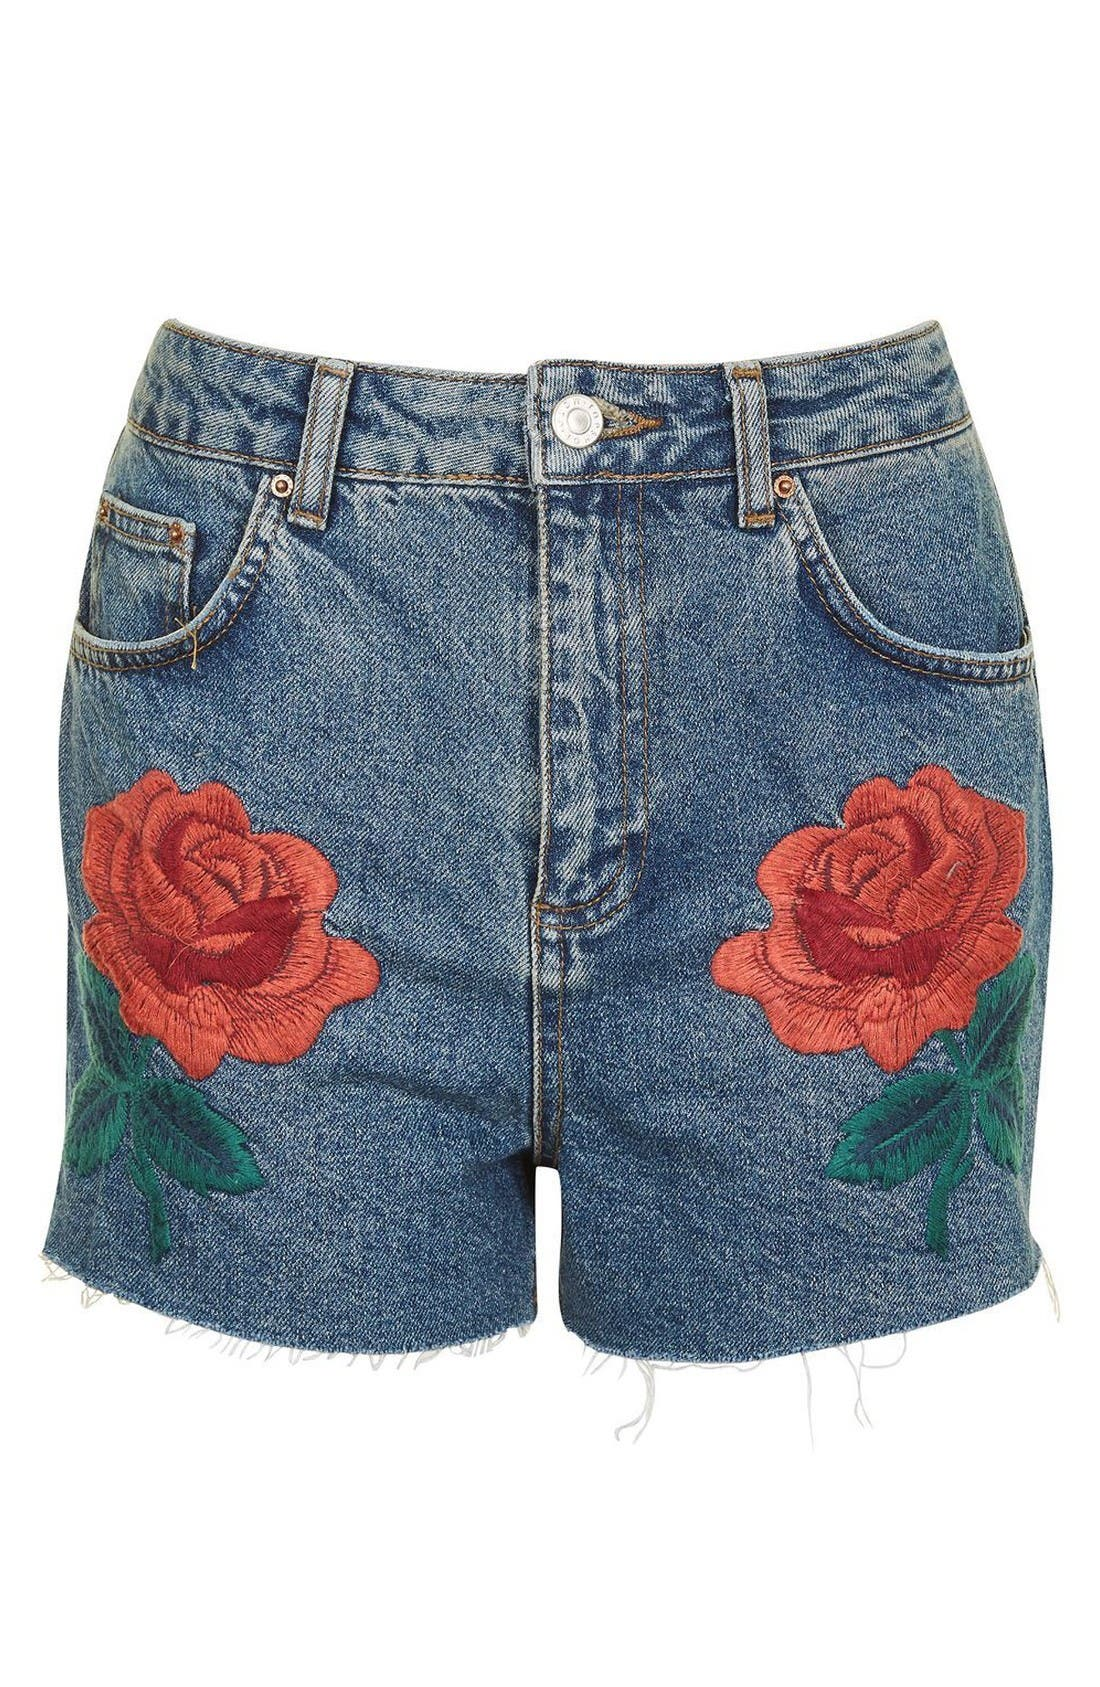 Rose Embroidered Mom Shorts,                         Main,                         color, Mid Denim